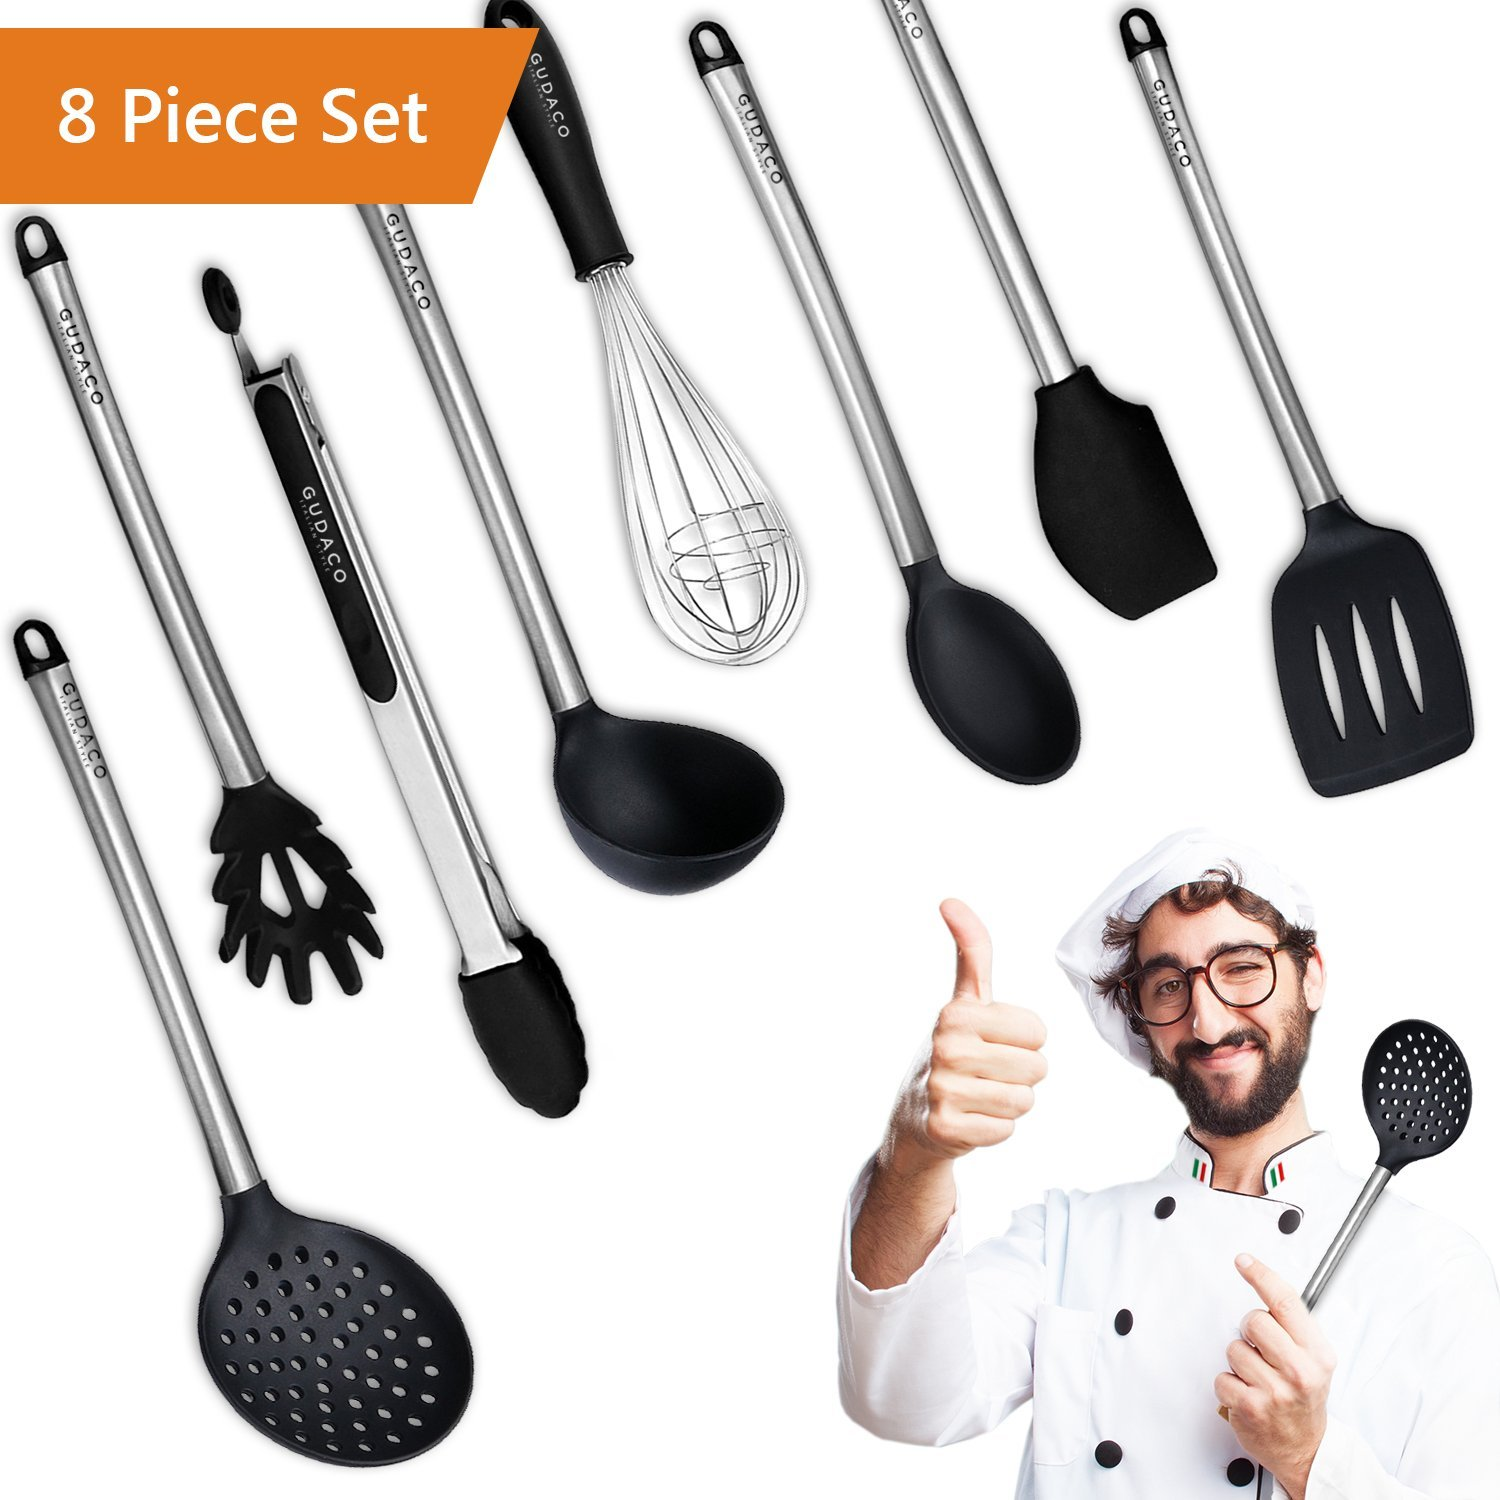 Premium Kitchen Utensils Italian Style, 8 Piece Black Silicone and Stainless Steel Kit, Cooking Gadgets: Serving Tongs, Spoon, Spatula Tools, Pasta Server, Ladle, Strainer, Whisk for Pots, Pans